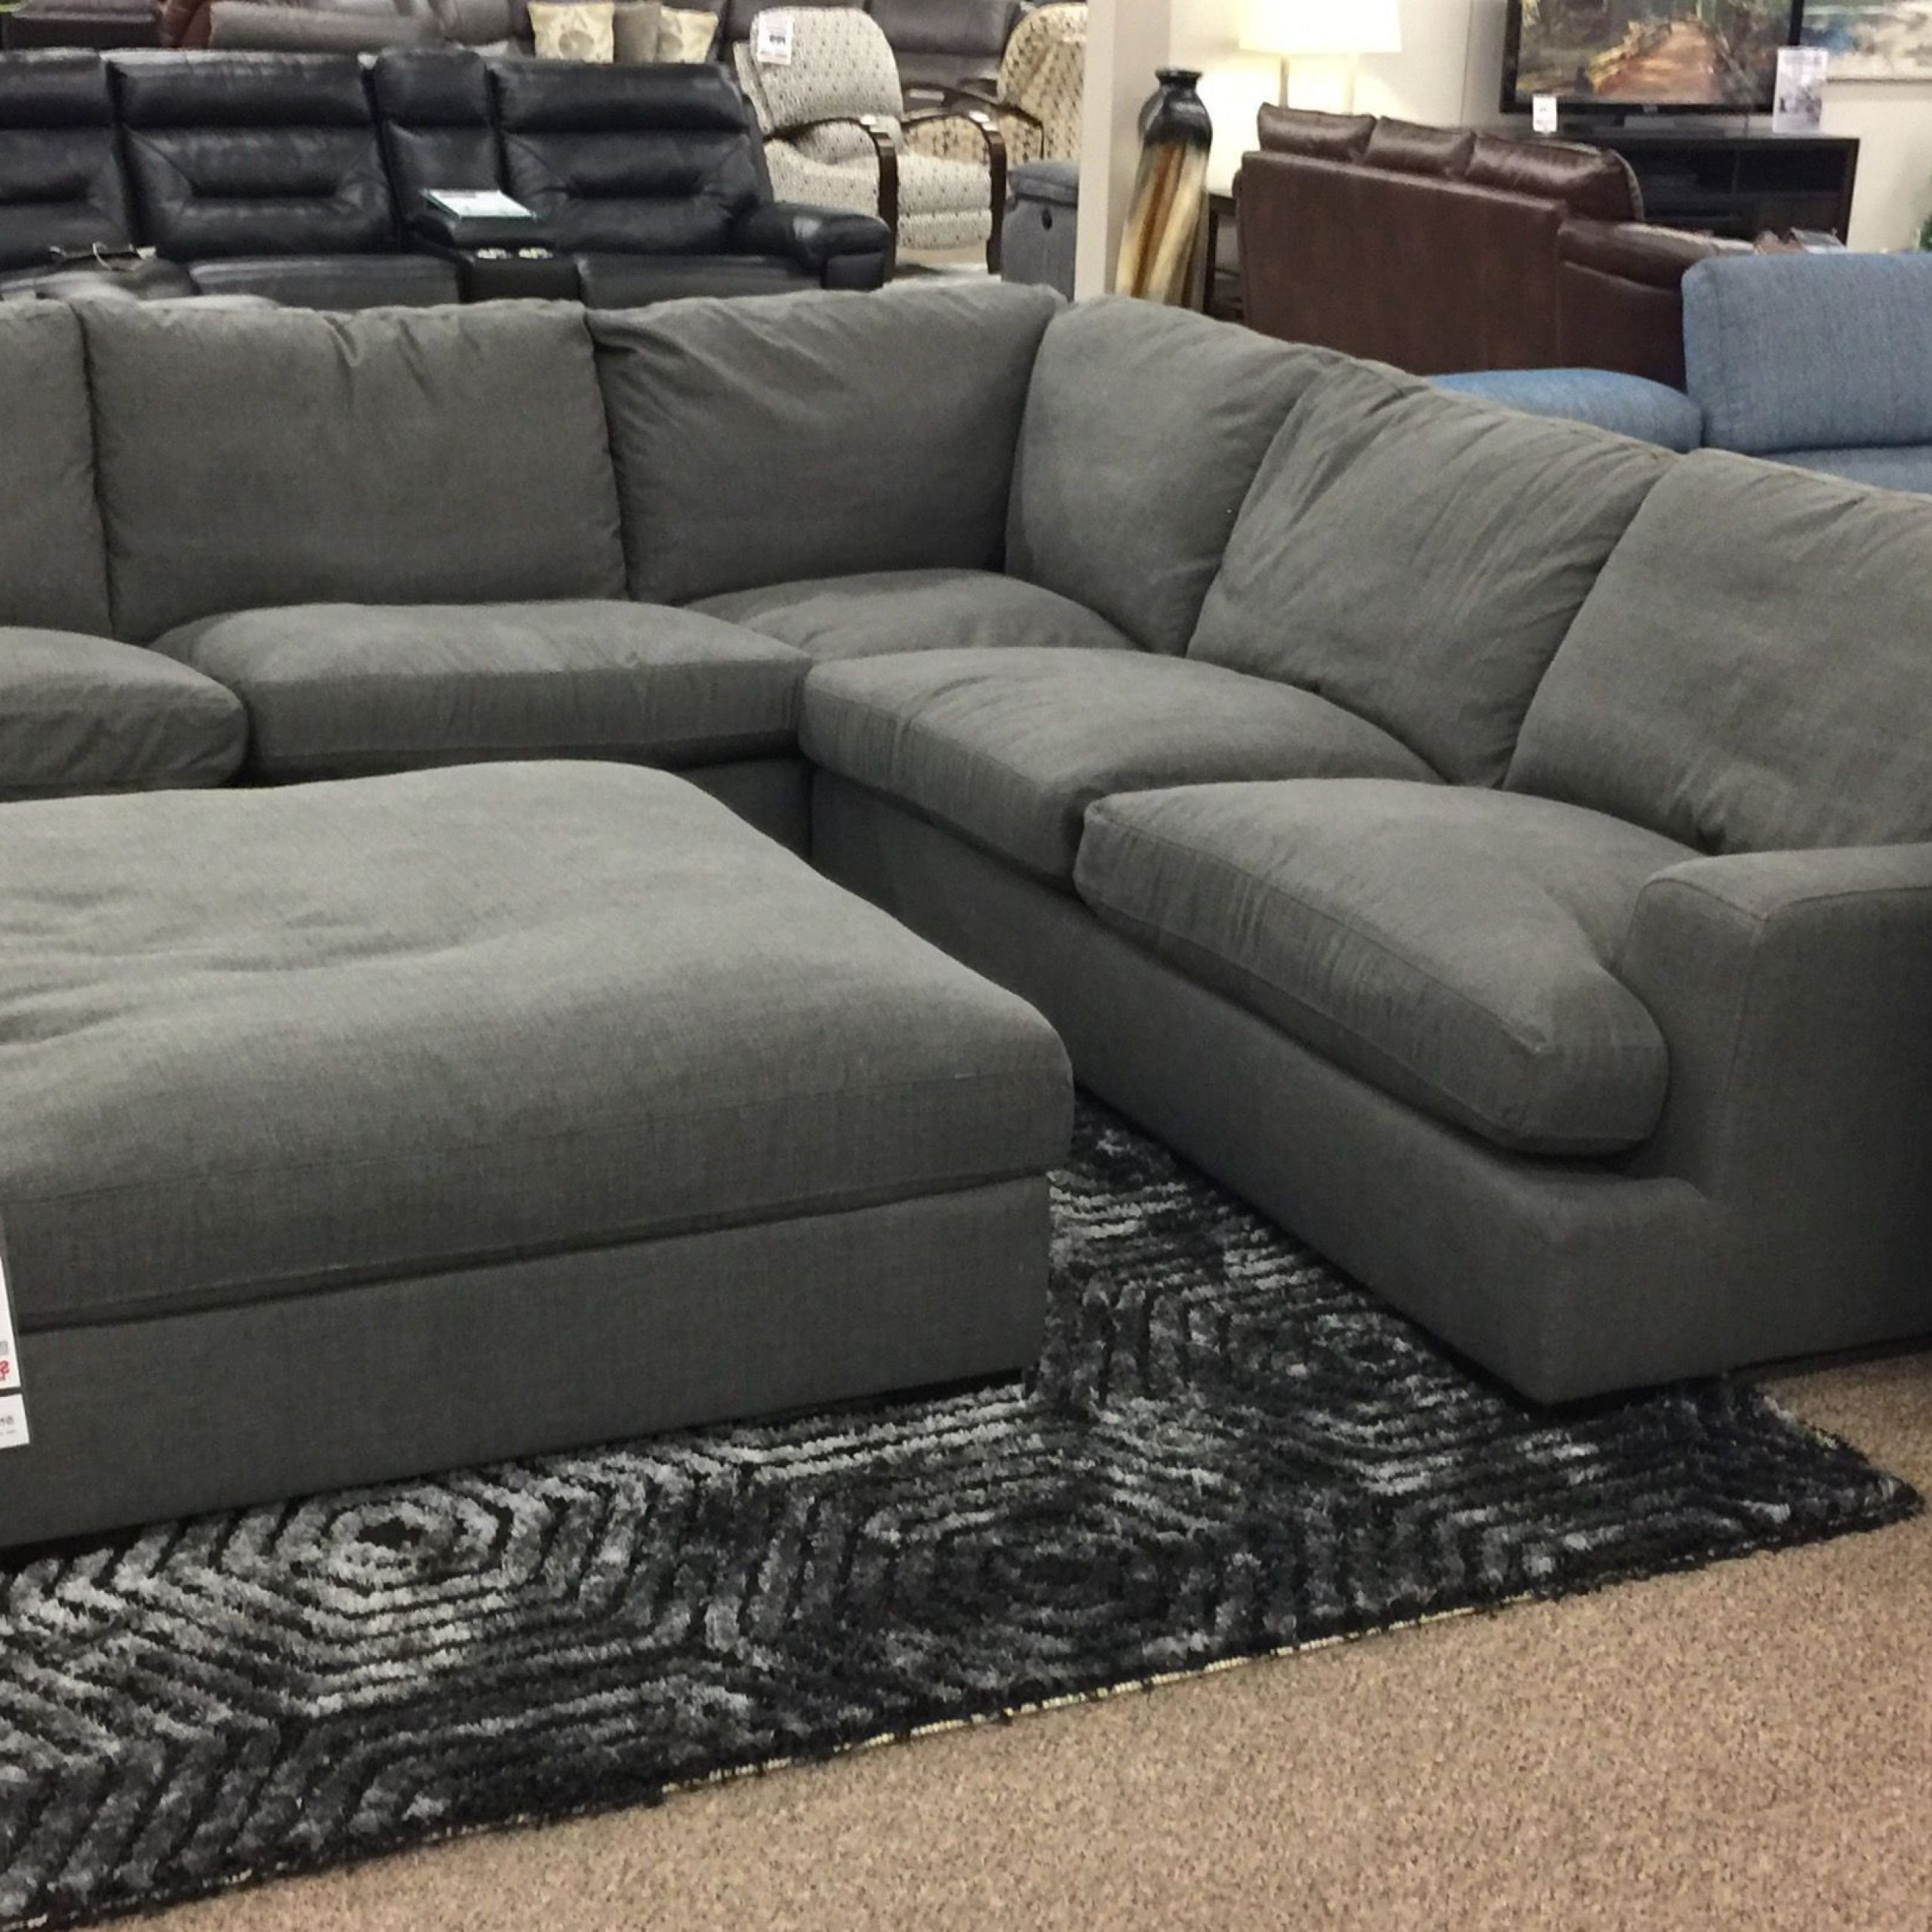 2019 20 Slate Blue Sectional Sofa (dengan Gambar) Throughout Gneiss Modern Linen Sectional Sofas Slate Gray (View 20 of 20)